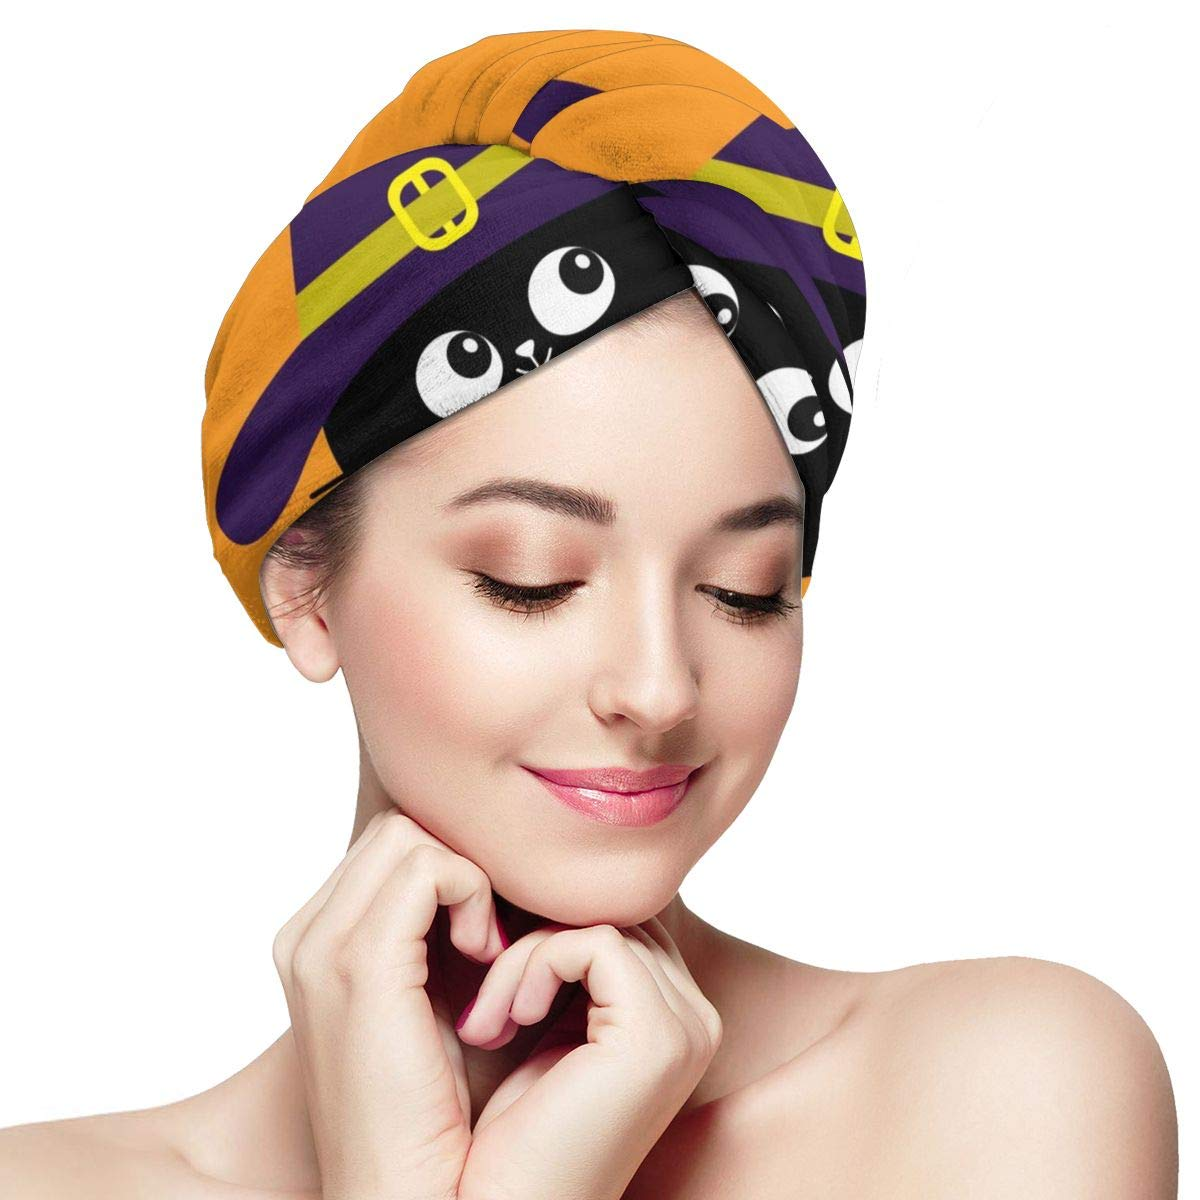 Microfiber Hair Towel Wraps For Black Max 88% OFF Women Happy Super sale period limited Cat Halloween